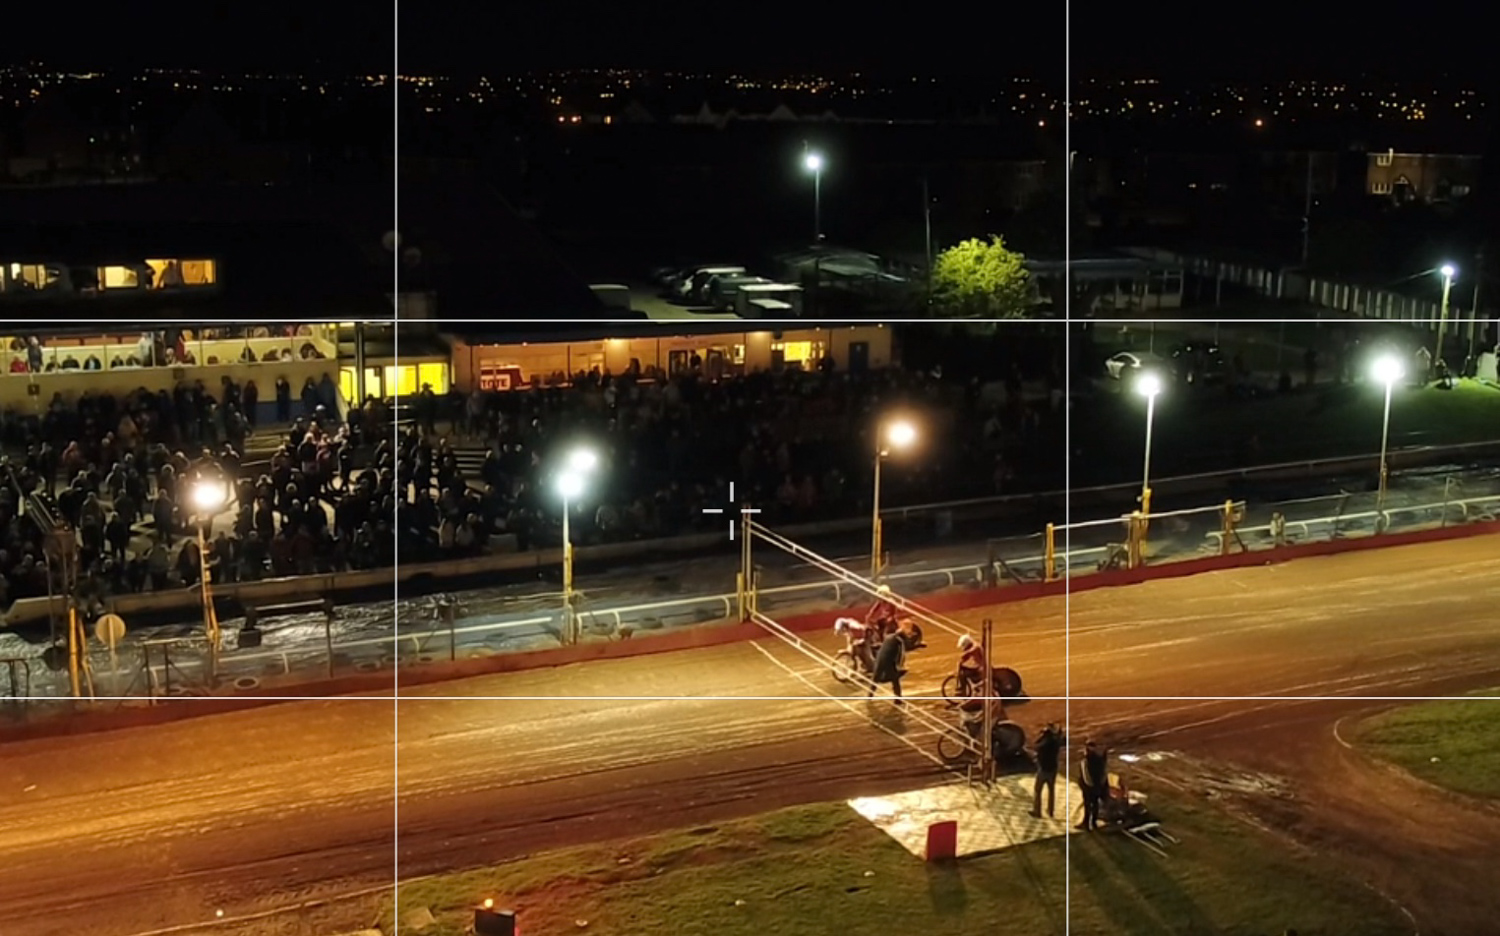 drone_filming_aerial_imagery_north_wales_speedway-6.jpg